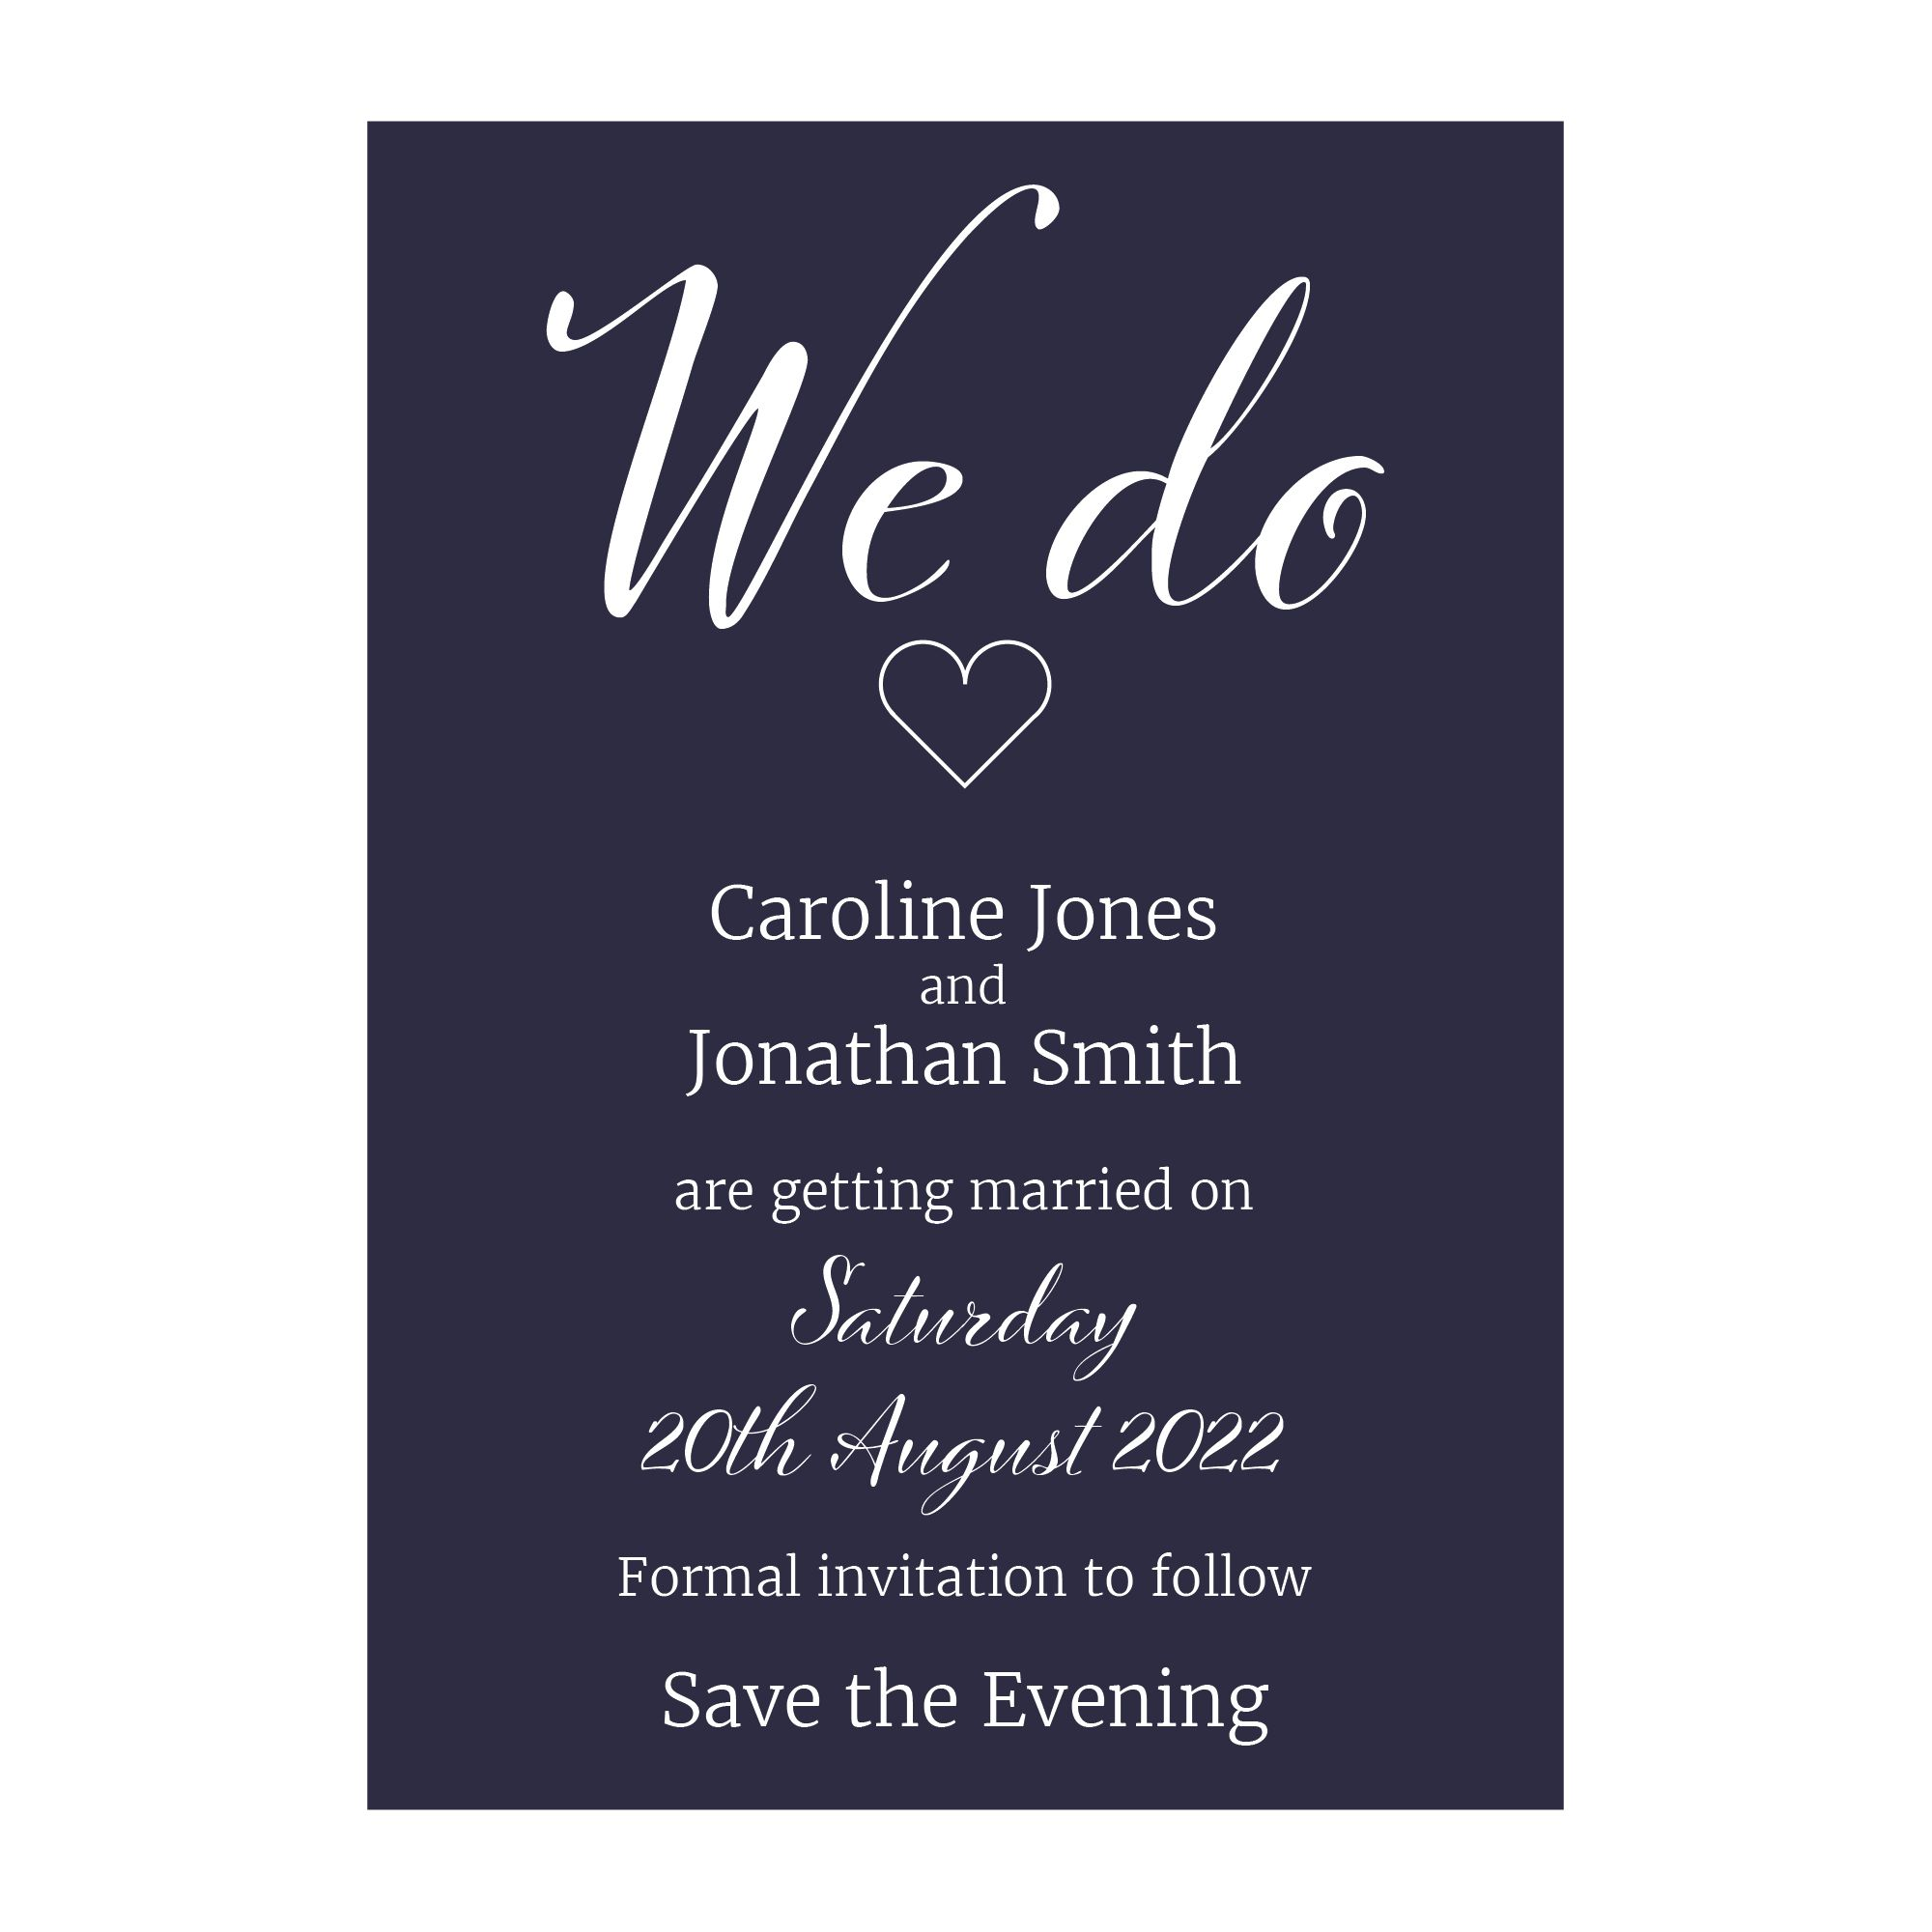 Navy Blue with White Ink We Do Decorative Save the Evening Cards